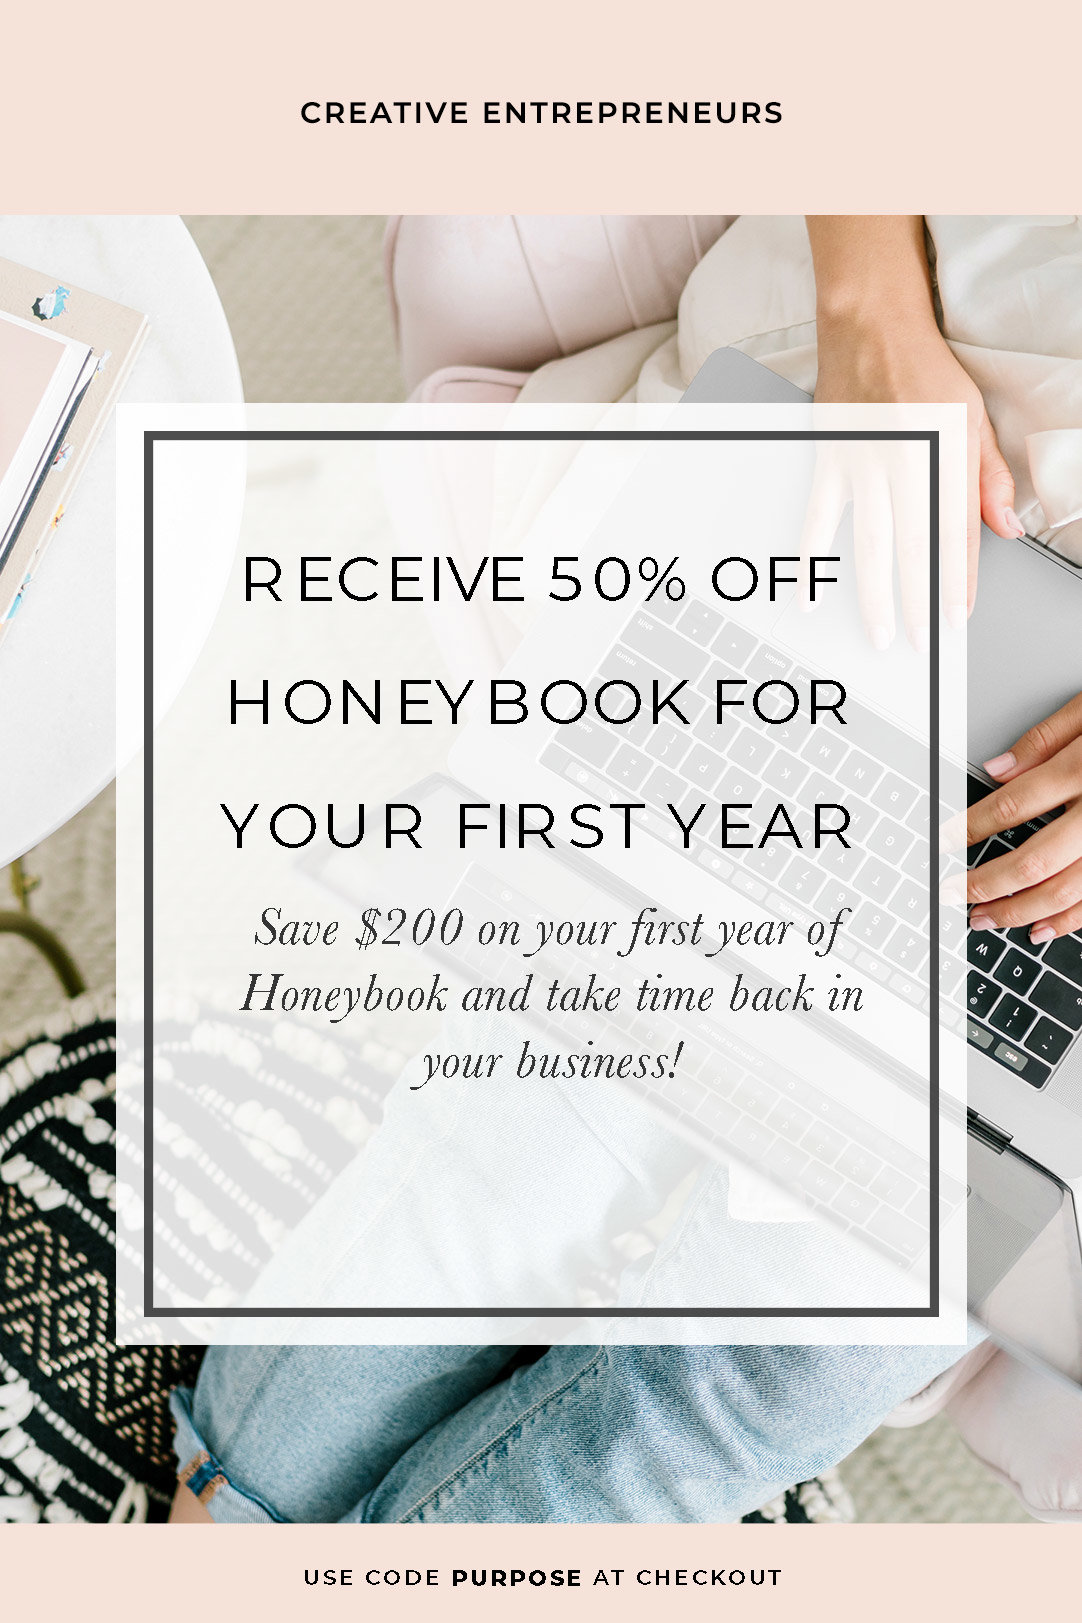 Honeybook is a client management systems that lets you automate your sales process. Use this 50% off code to receive $200 off your first year of Honeybook. Sign up for a trial below using the link and when you're ready, you'll automatically get 50% off! #weddingpros #weddingplanner #weddingphotographer #candicecoppola